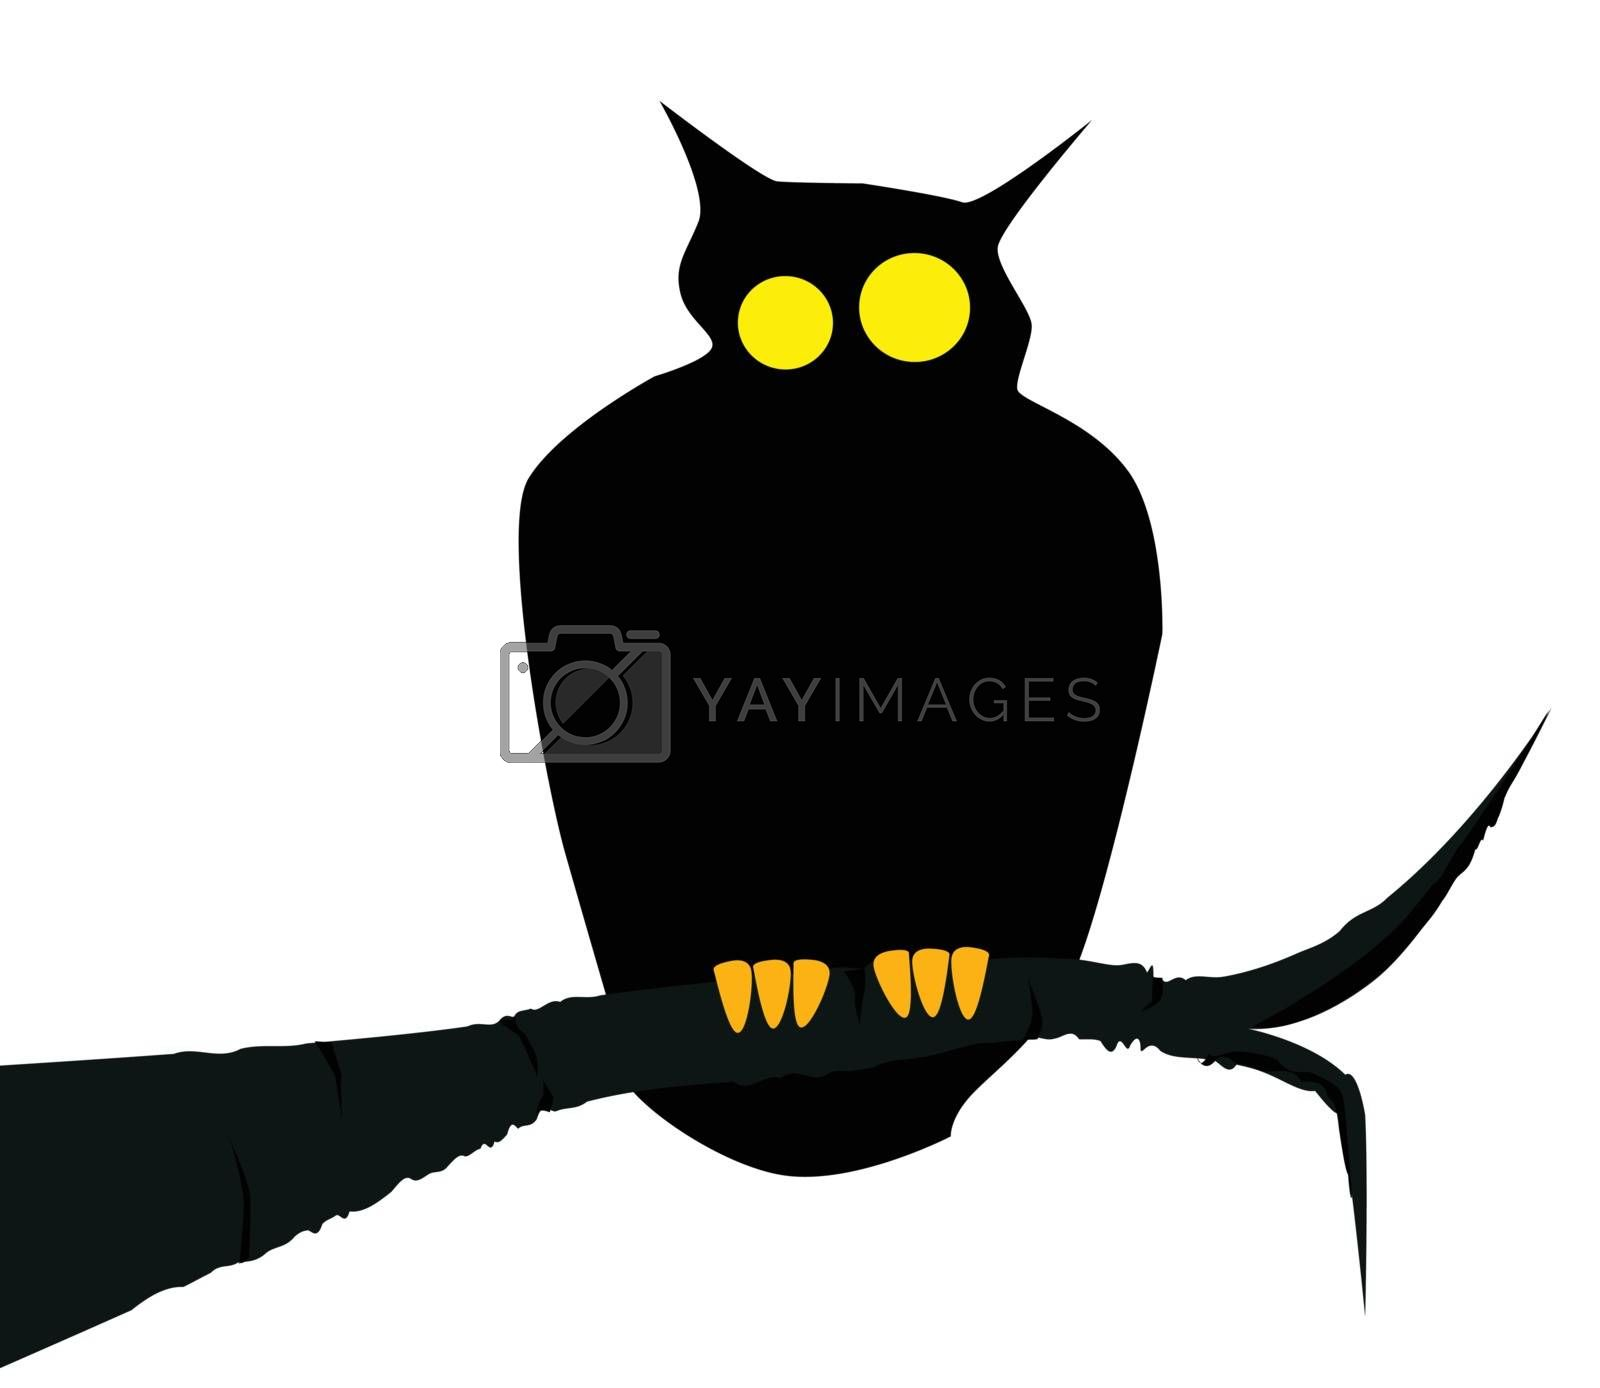 An owl sitting on a branch. Isolated over white.